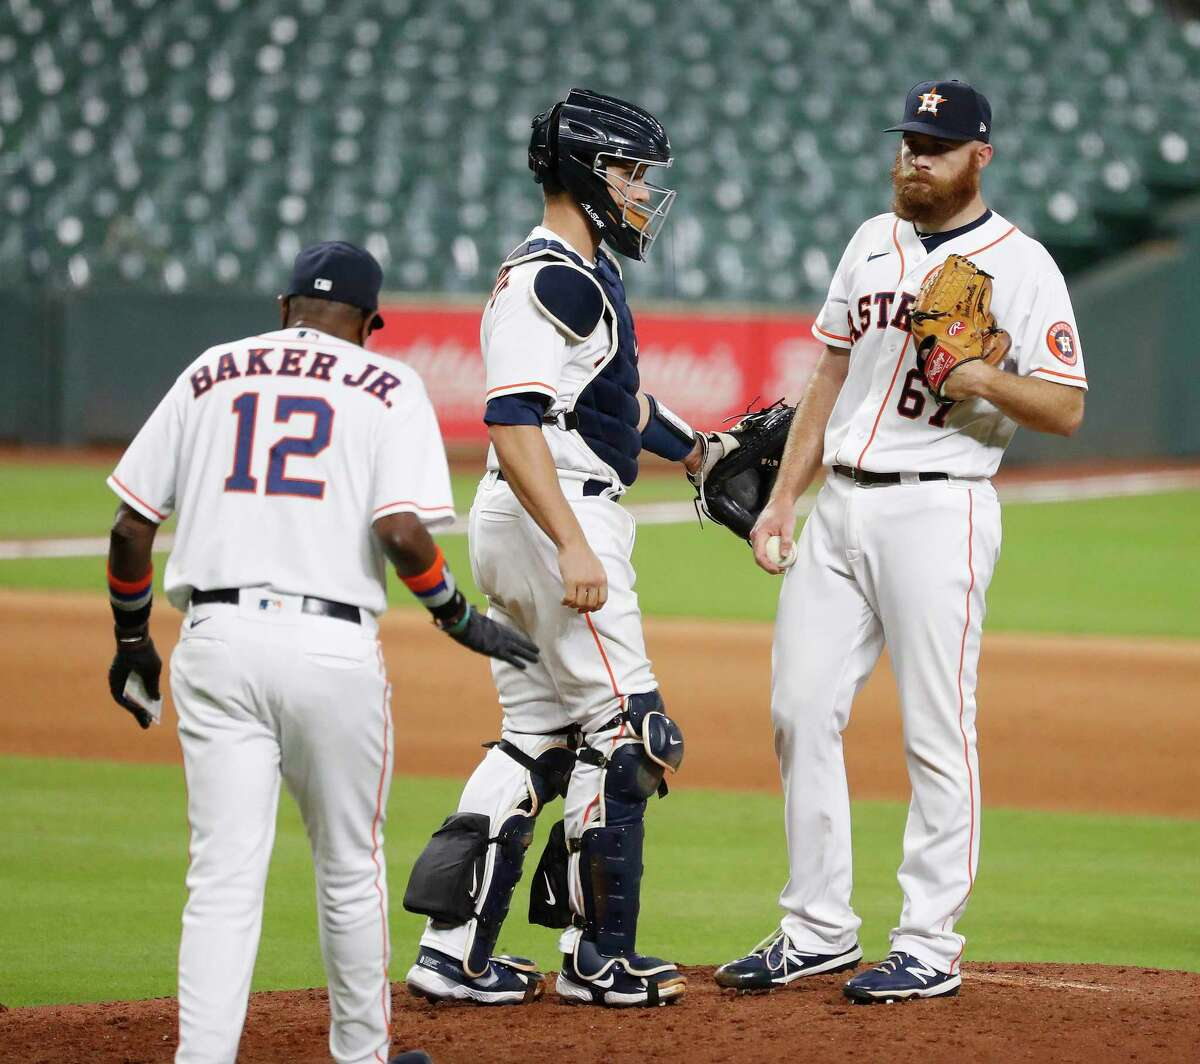 Houston Astros manager Dusty Baker Jr. walks out to the mound to retrieve pitcher Cy Sneed after he gave up a two-run homer to Los Angeles Dodgers Edwin Rios during the thirteenth inning of an MLB baseball game at Minute Maid Park, Wednesday, July 29, 2020, in Houston.